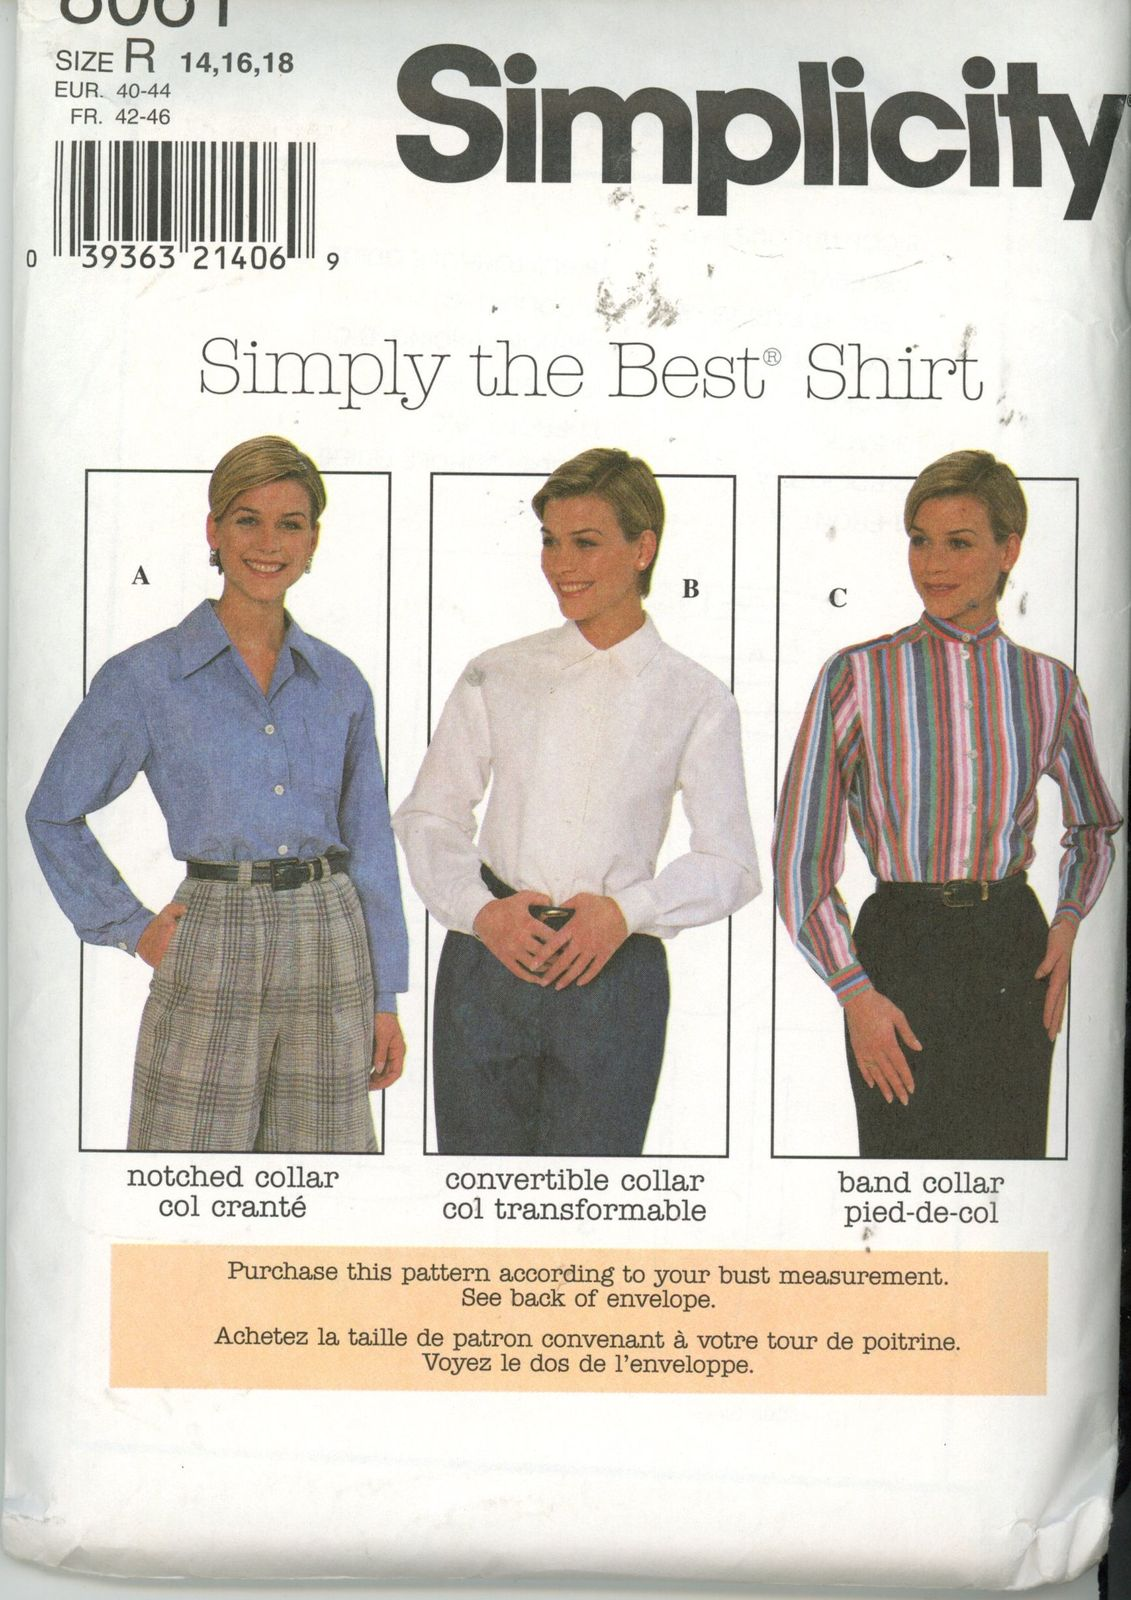 Simplicity 8061 Misses Shirt with variations - Size 14, 16, 18  UNCUT